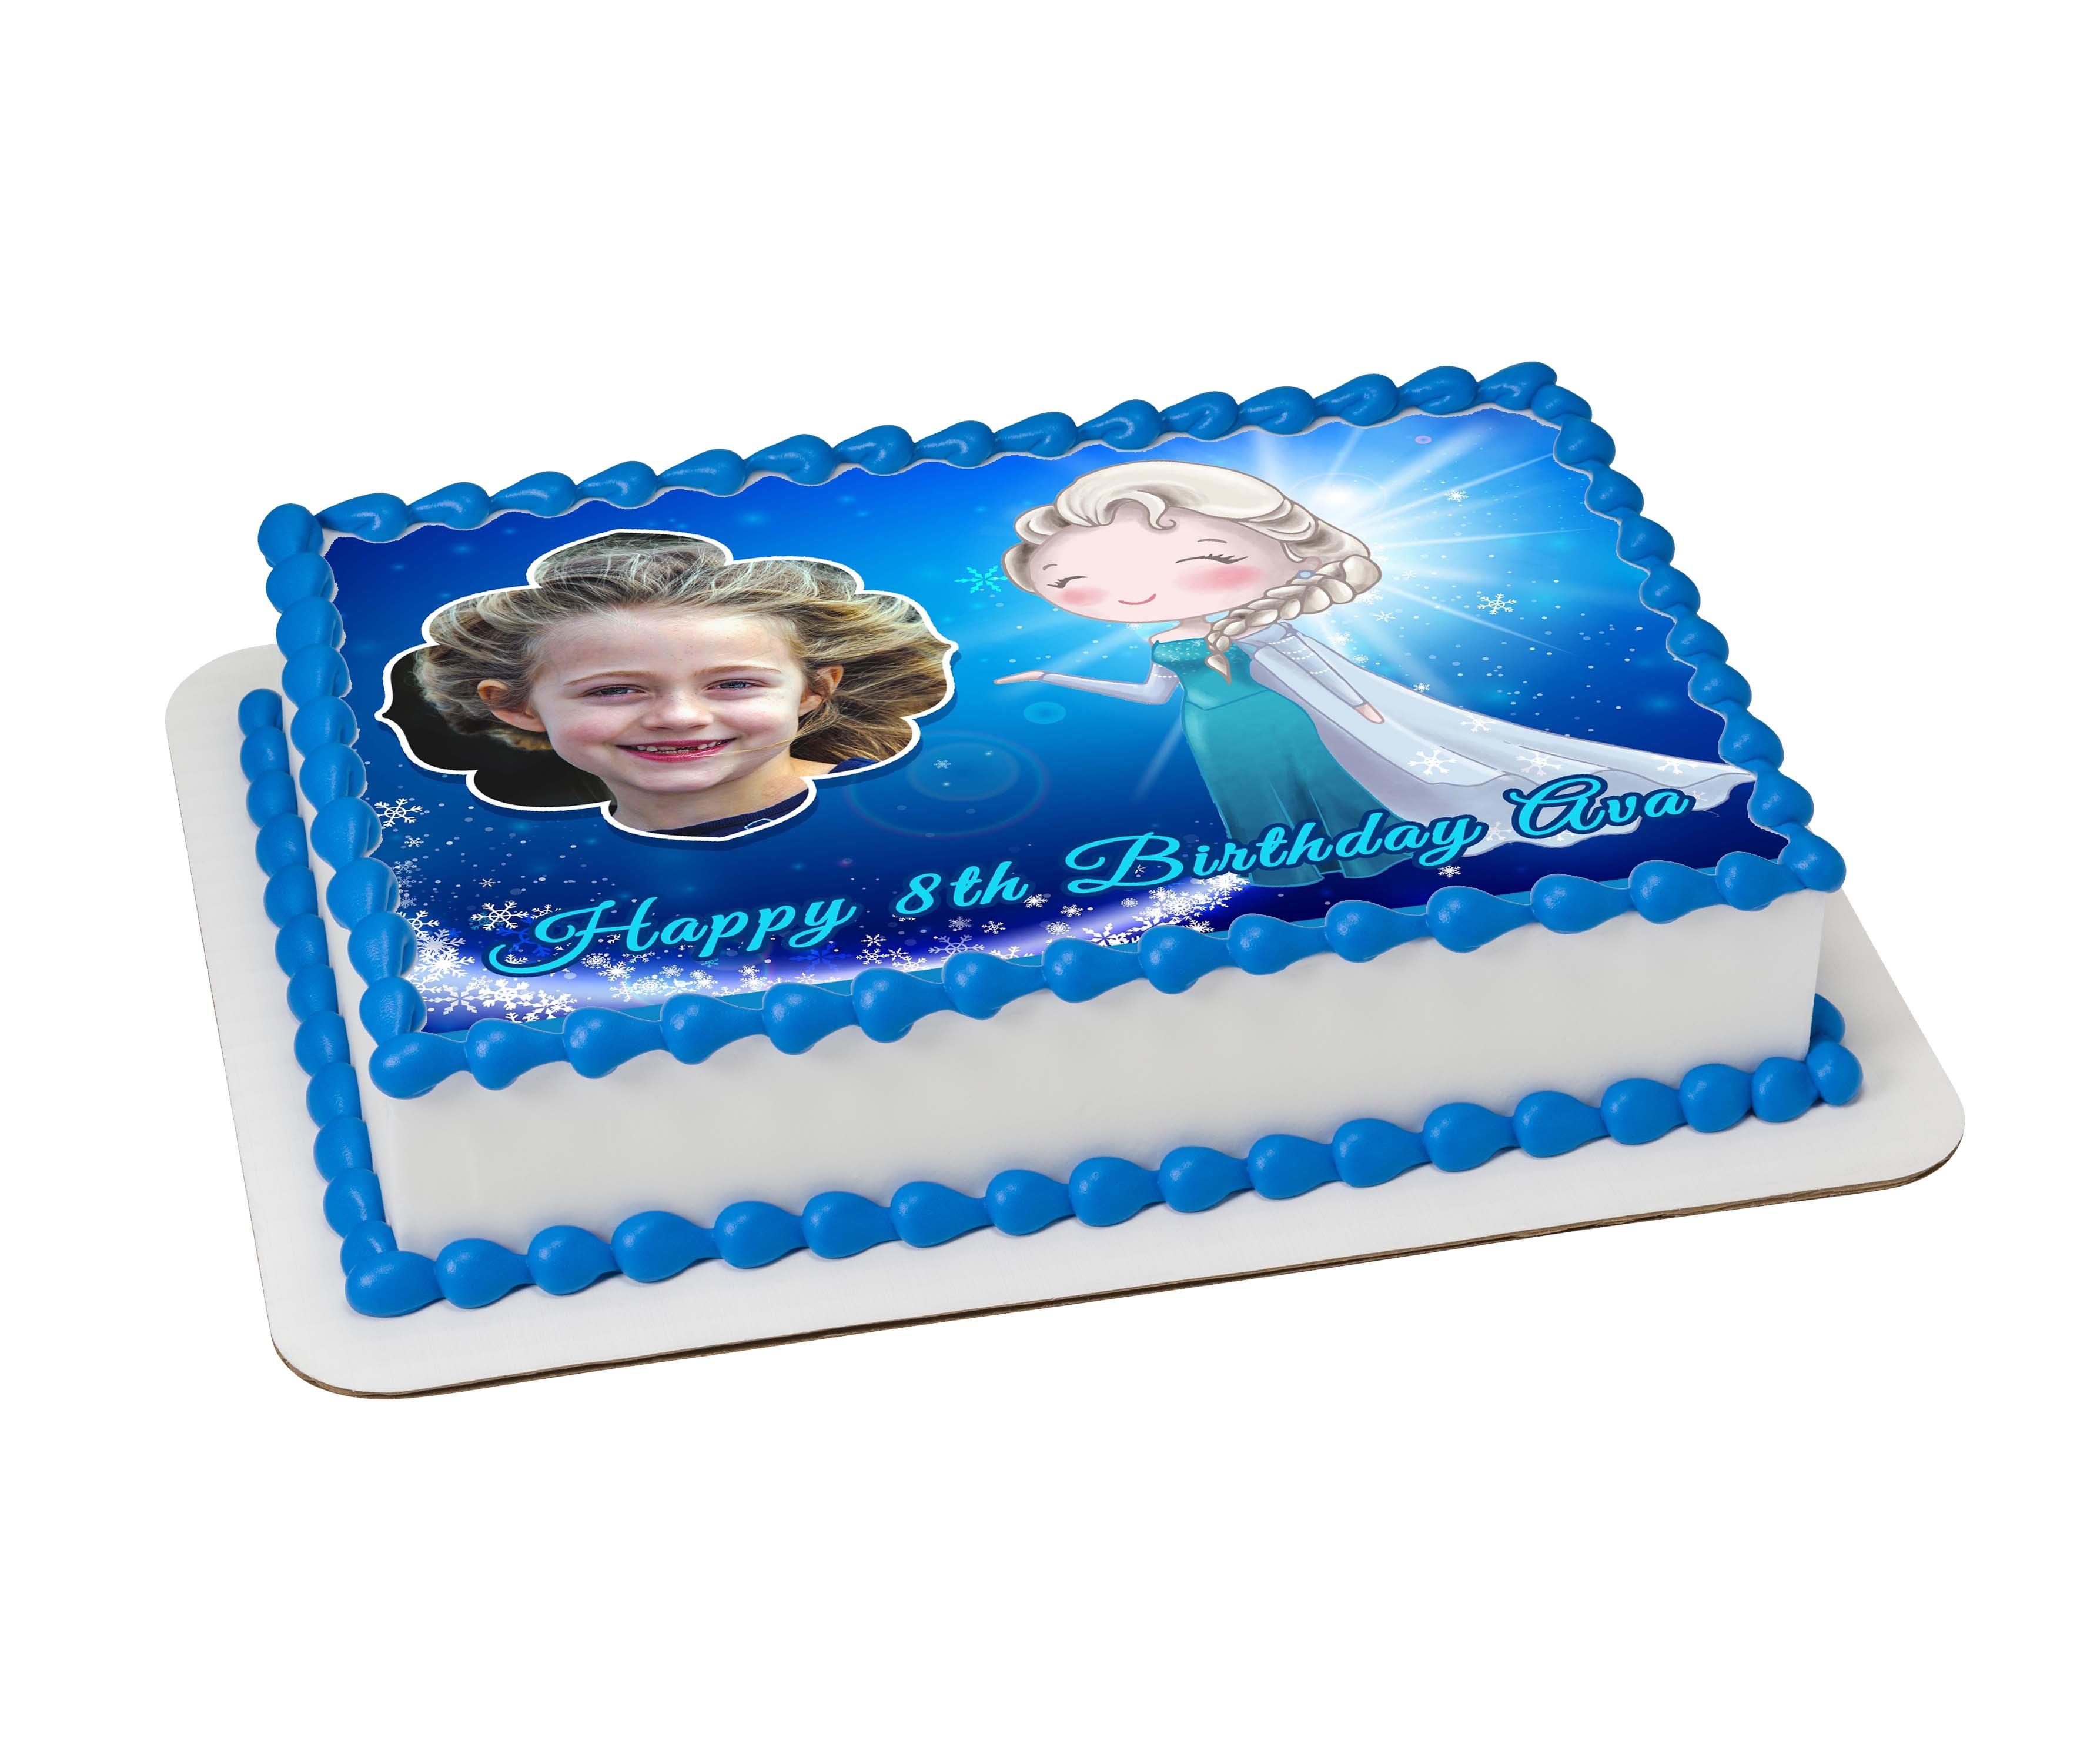 Frozen Inspired Photo Cake -  Custom Edible Icing Images - printsoncakes